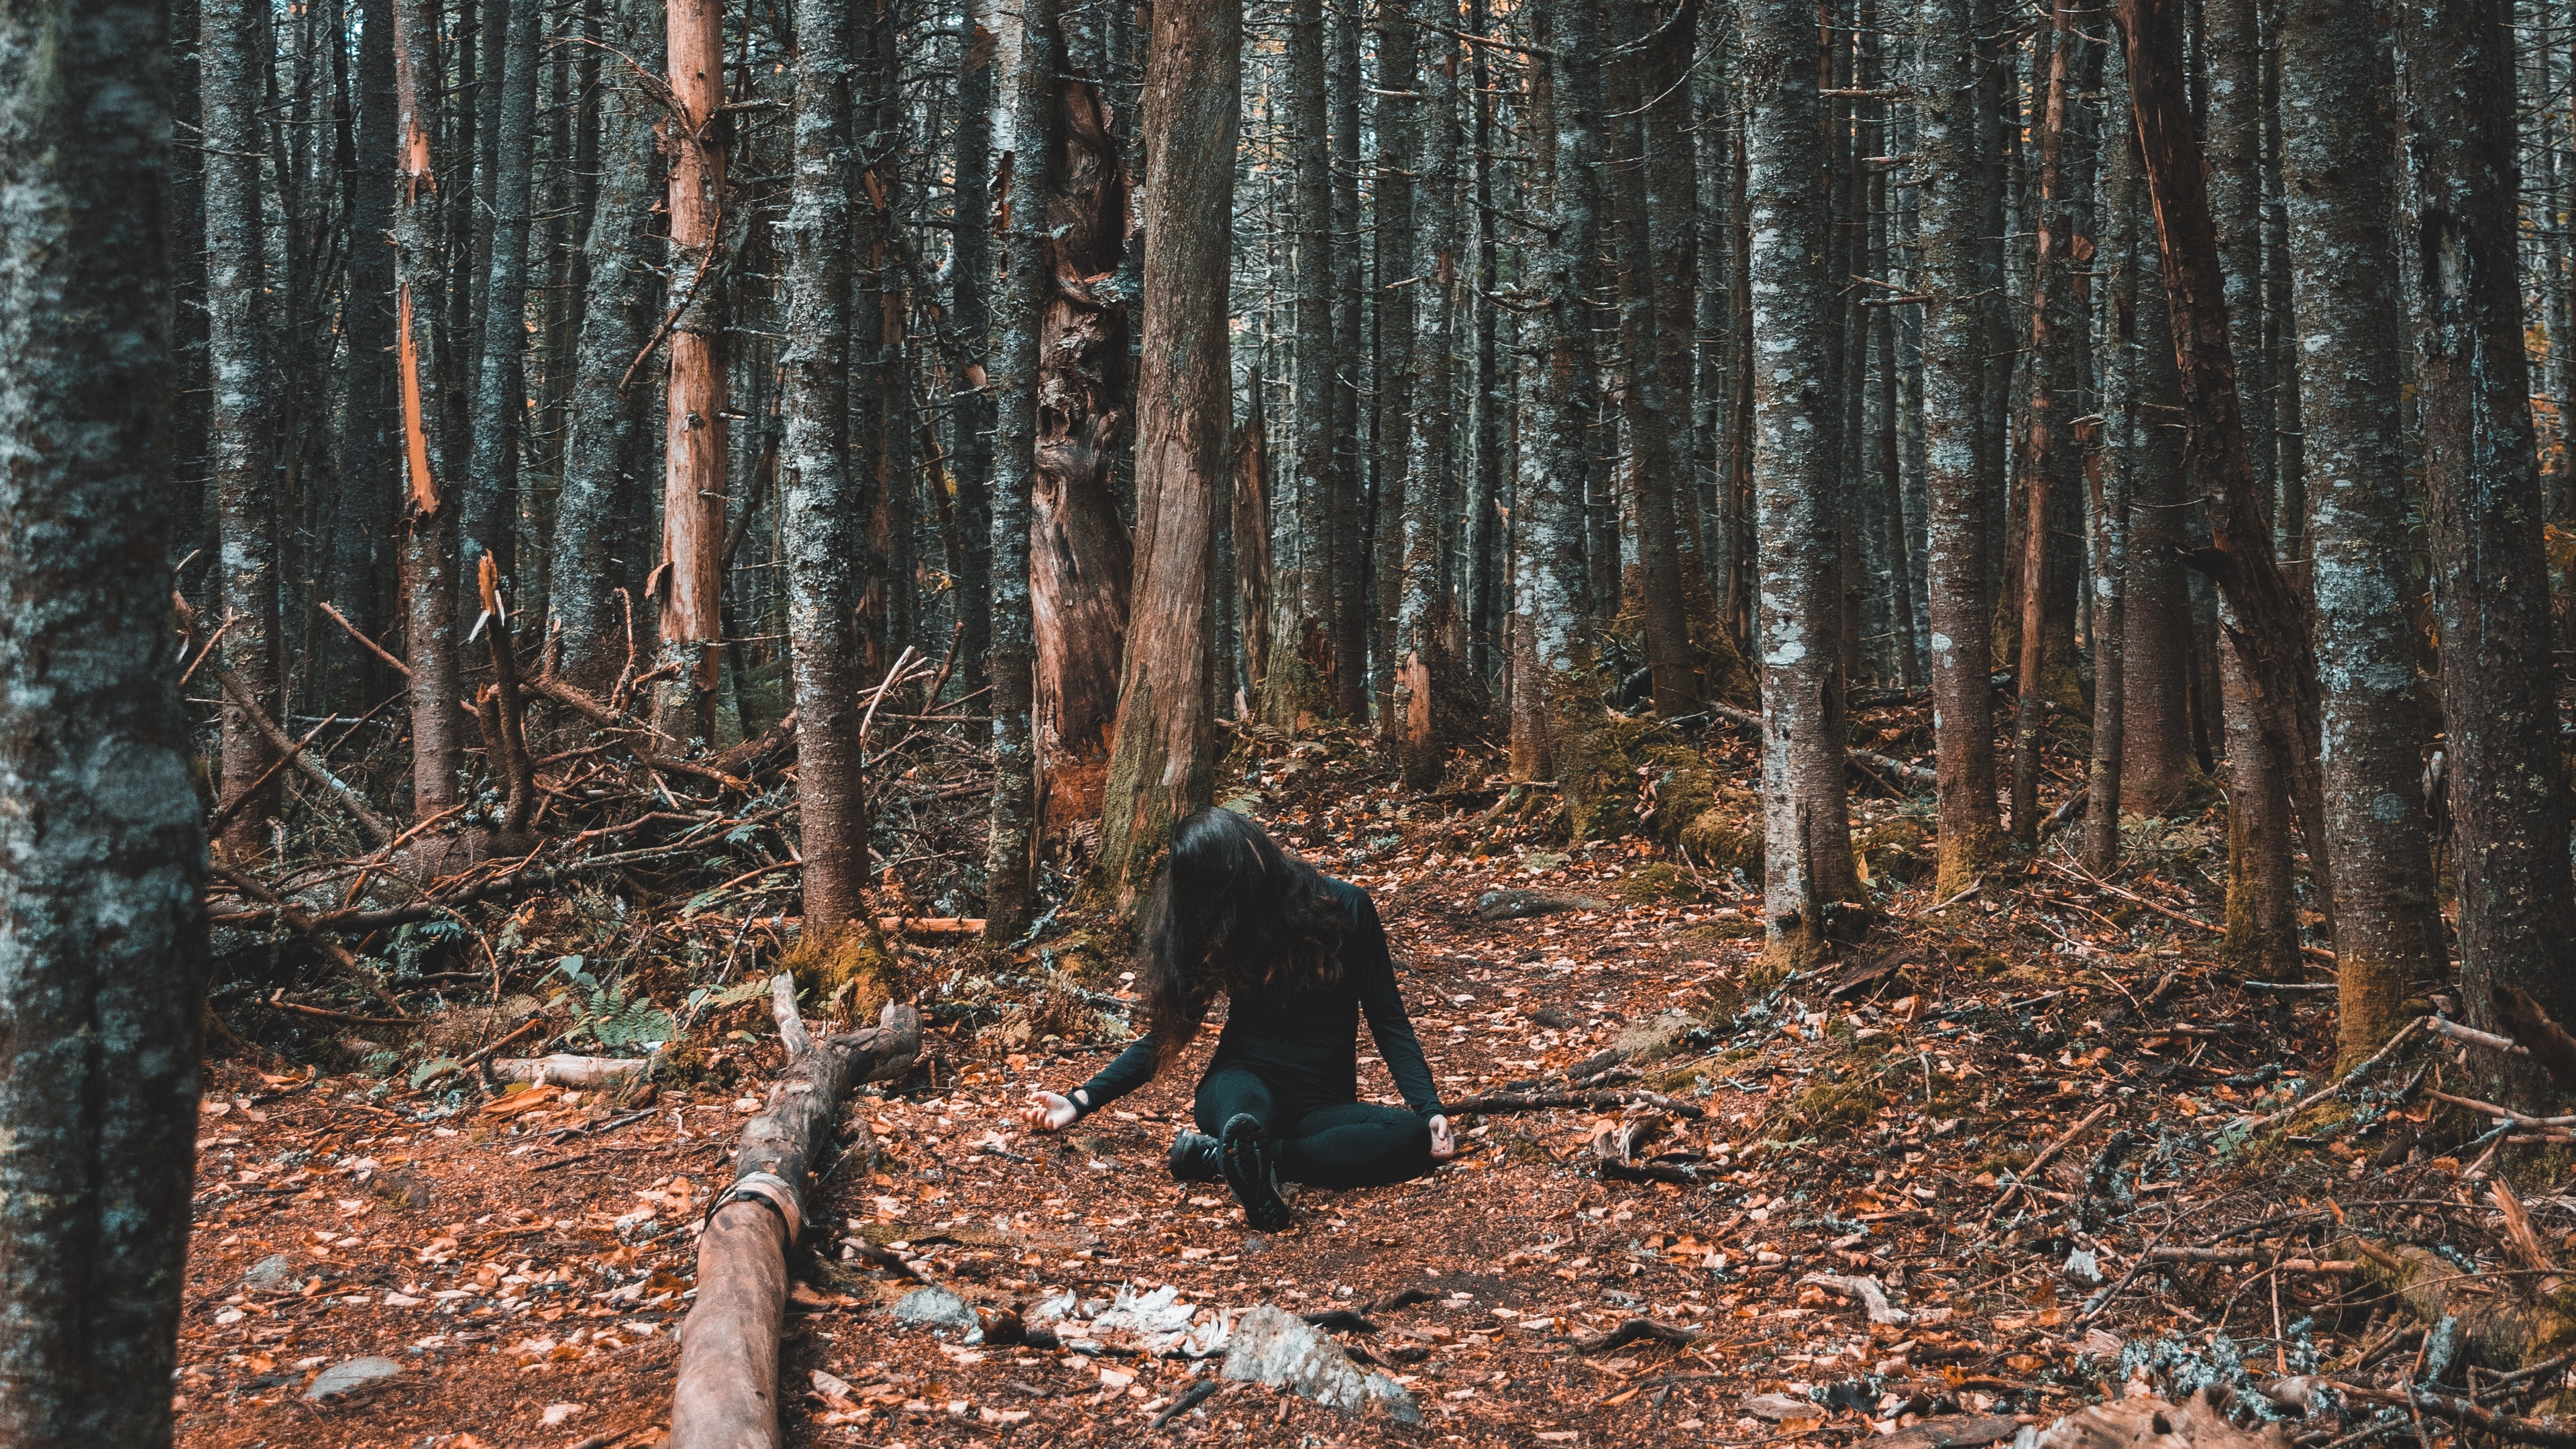 forest girl loneliness trees autumn 4k 1541115247 - forest, girl, loneliness, trees, autumn 4k - loneliness, Girl, Forest